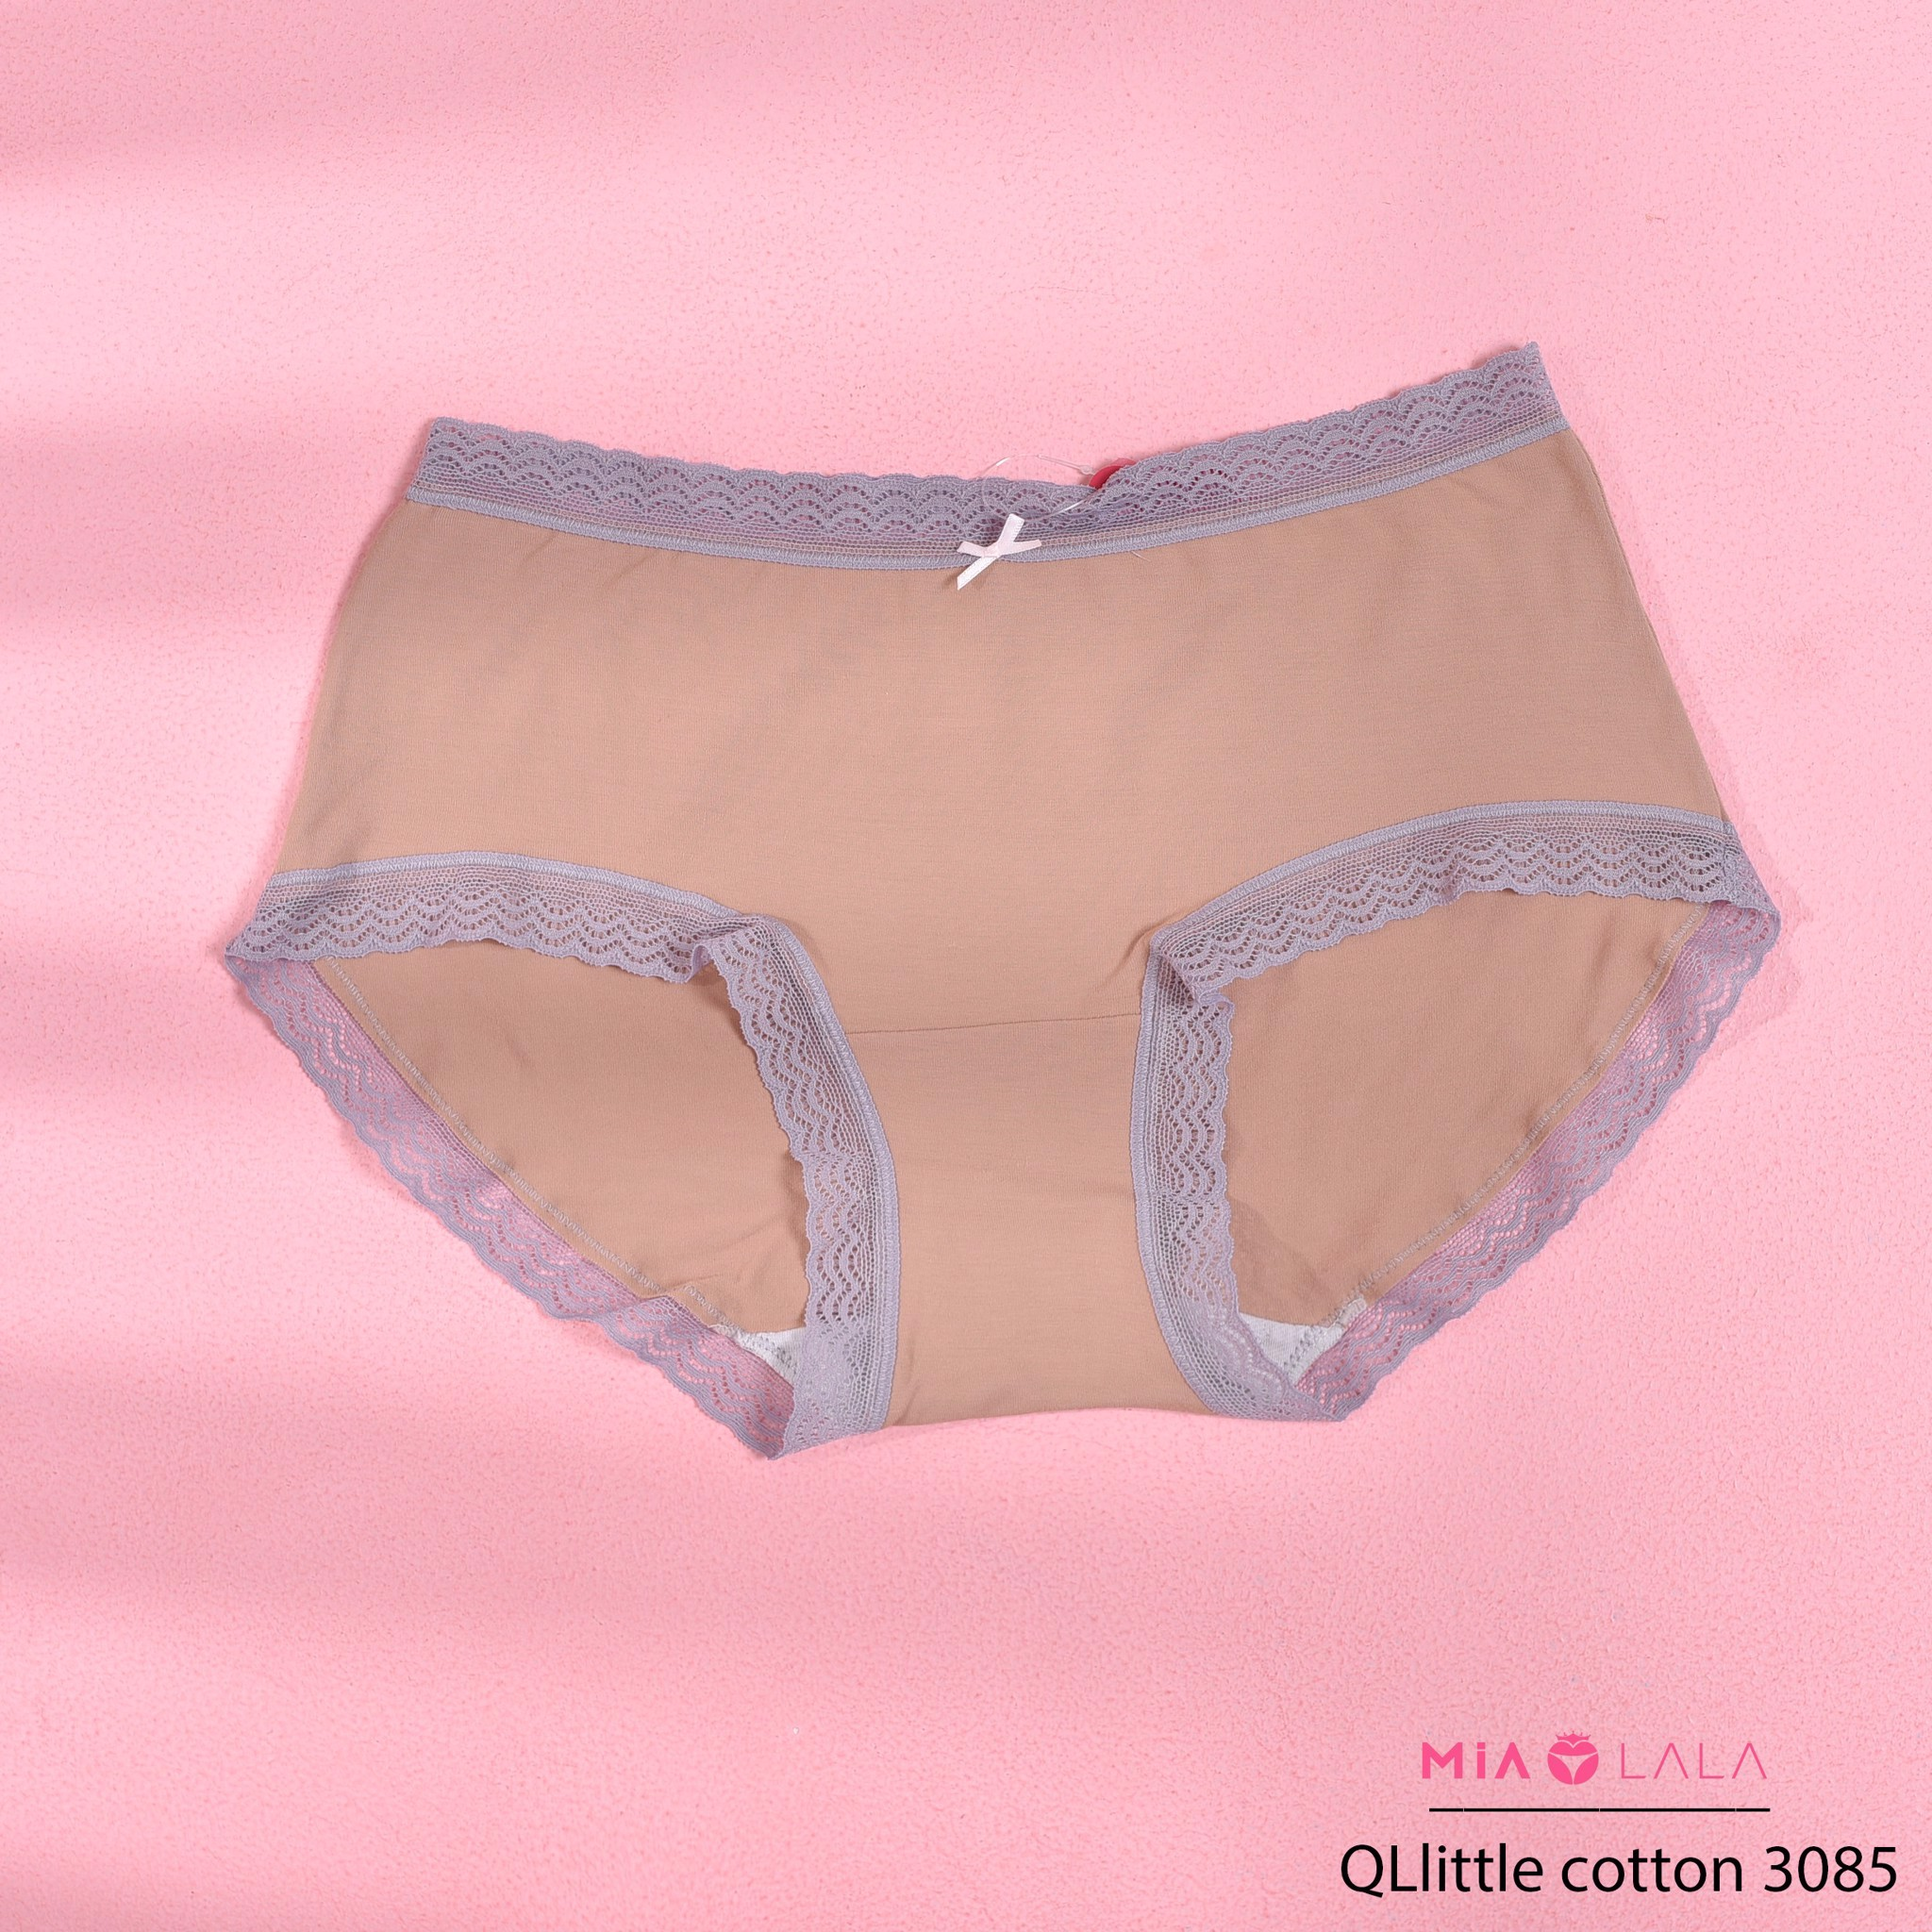 QL Little cotton 3085